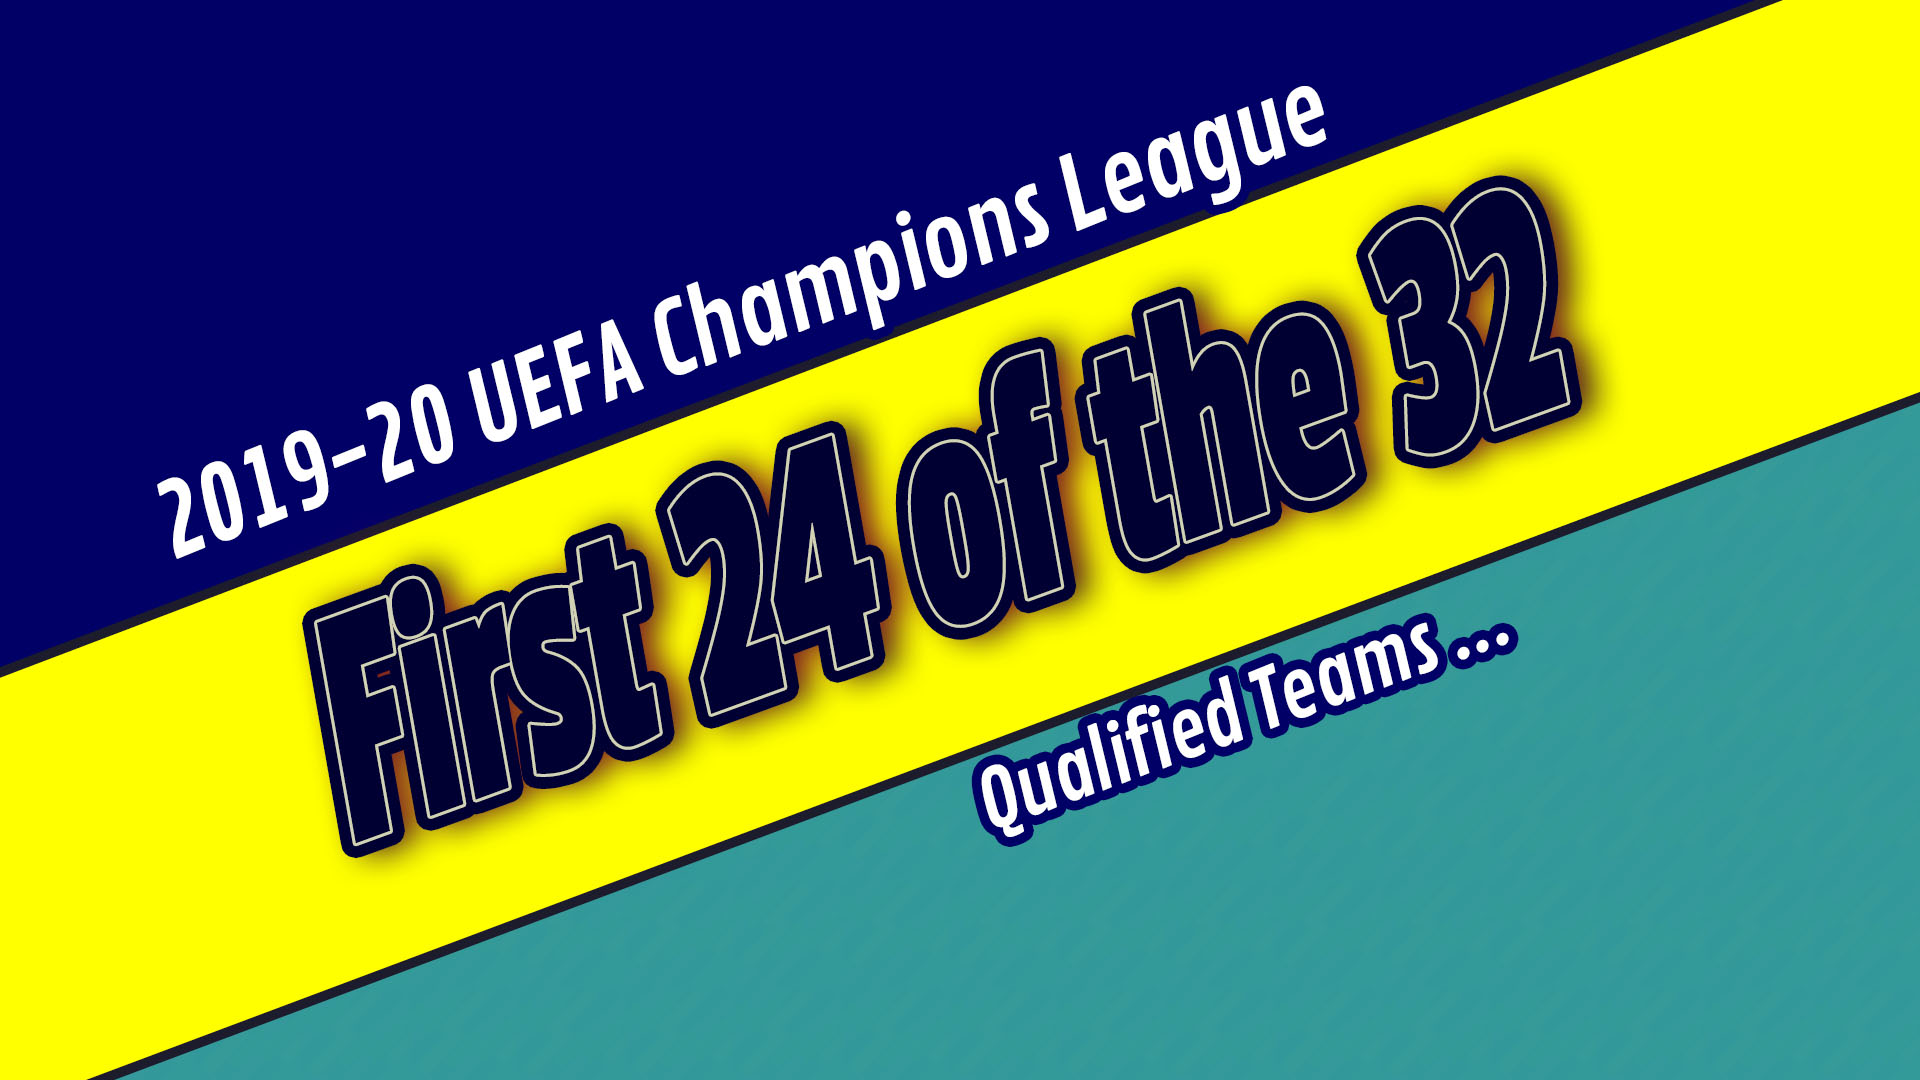 26 Of 32 This Is What We Have So Far The 2019 20 Uefa